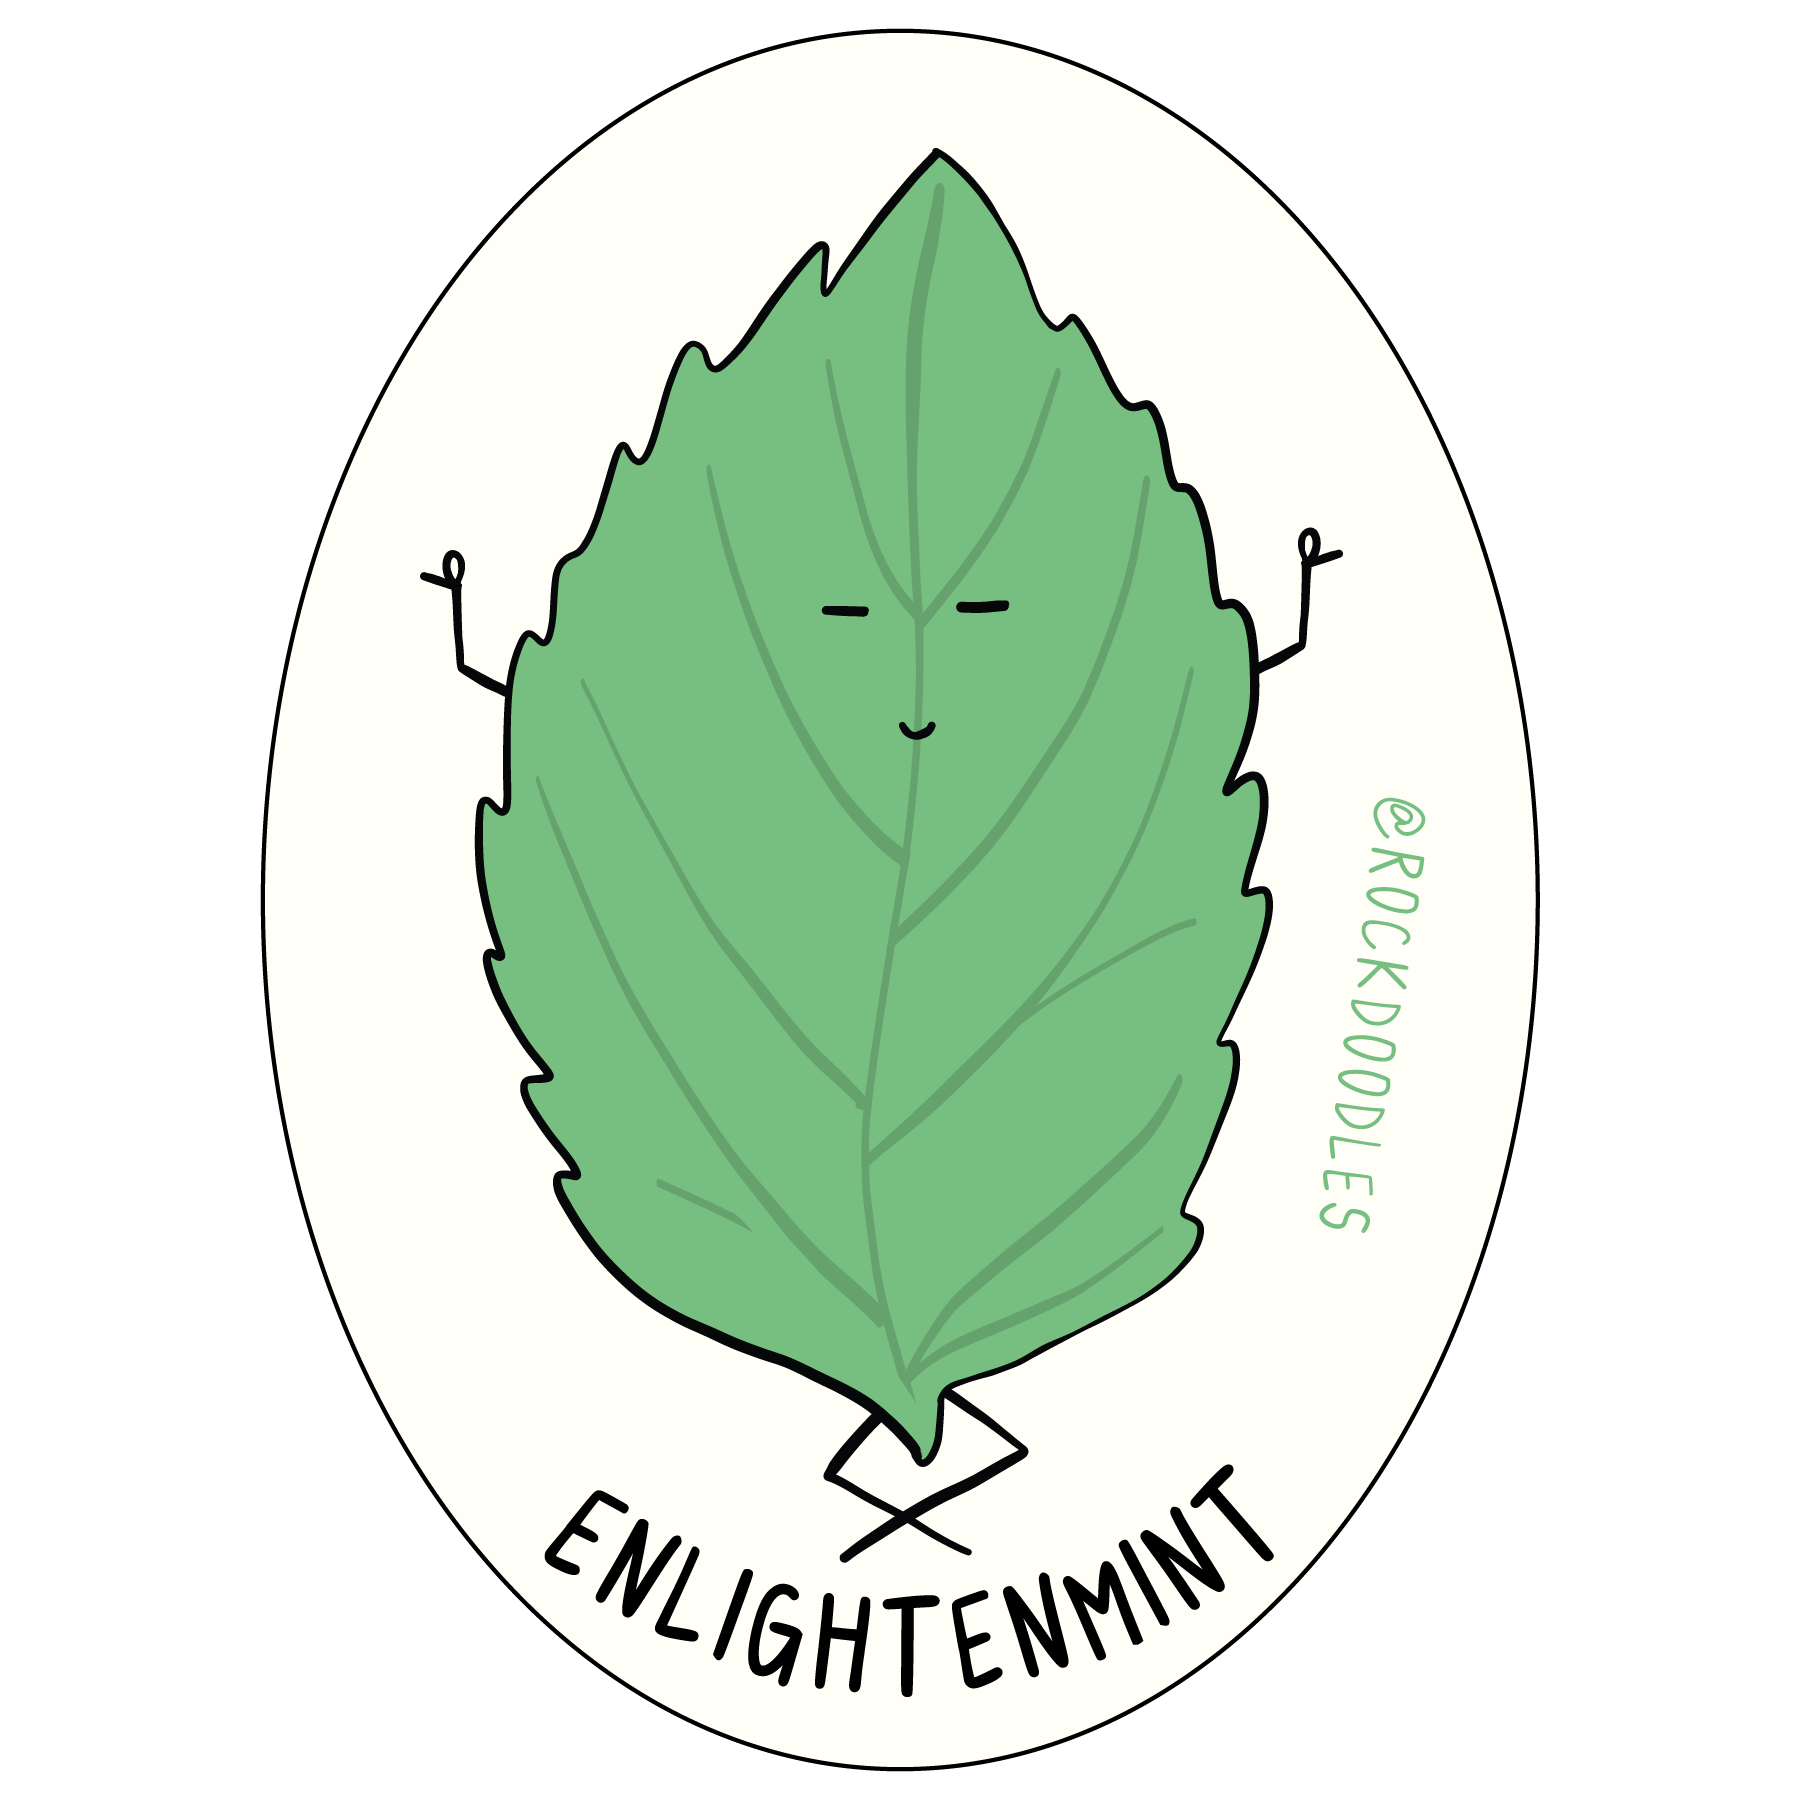 Enlightenmint Air Freshener